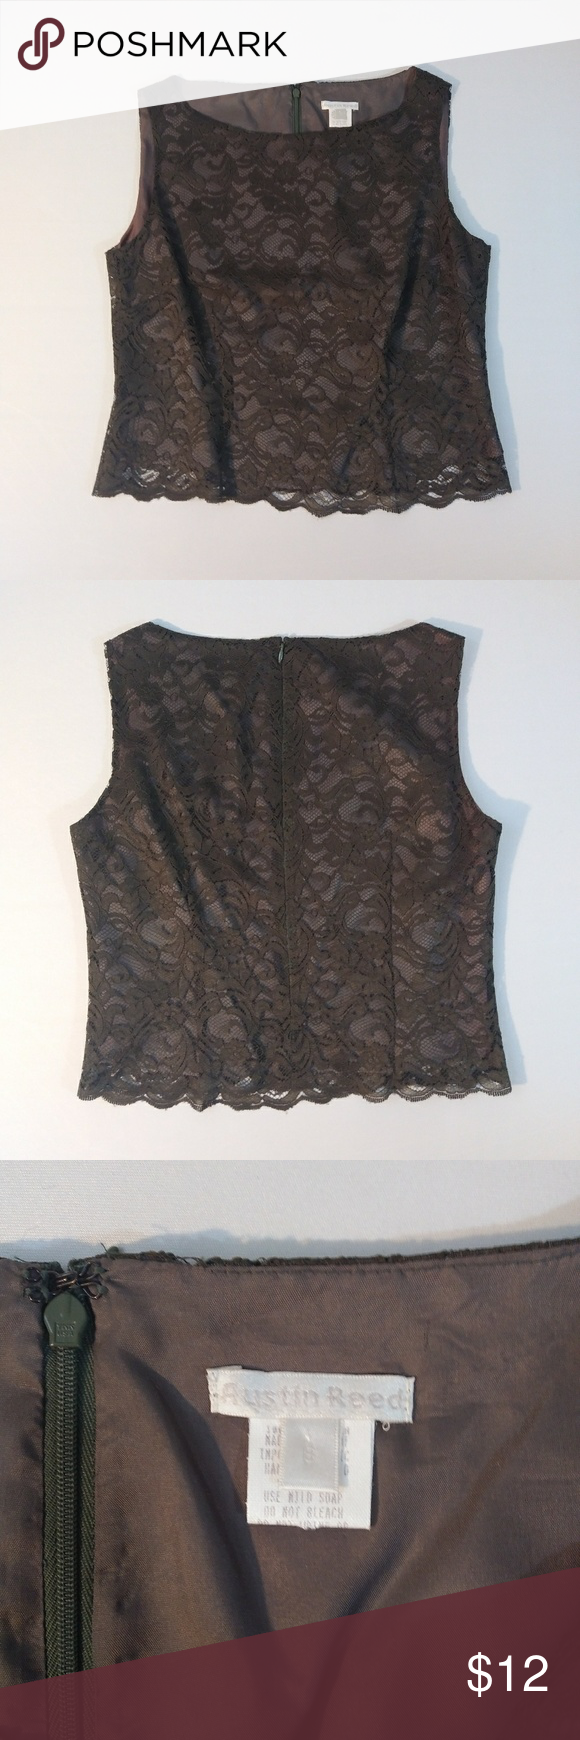 Austin Reed Lace Top Size 8 Lace Top Clothes Design Tops